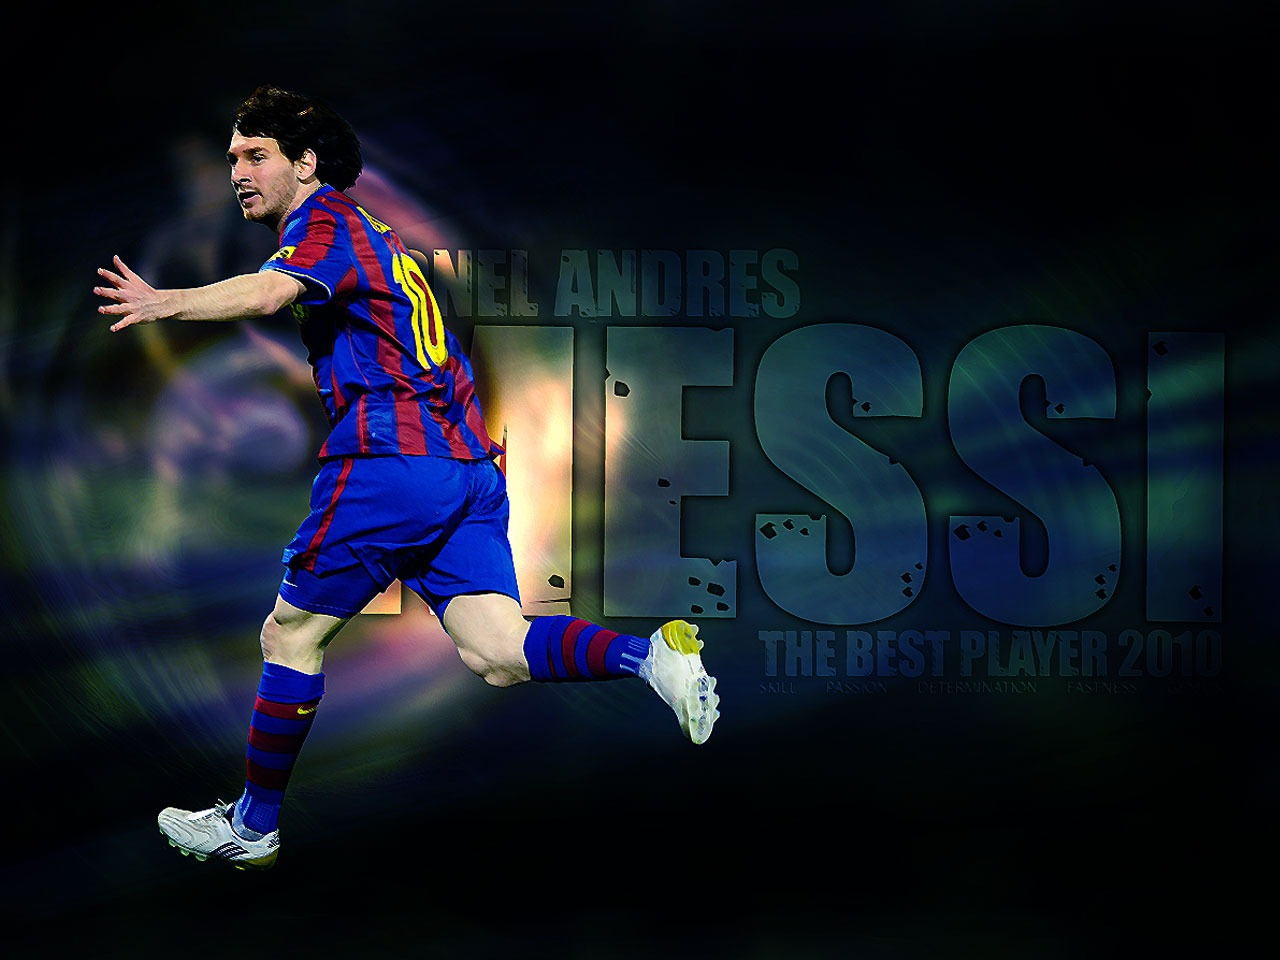 Lionel Messi Latest HD Wallpapers 2012 2013